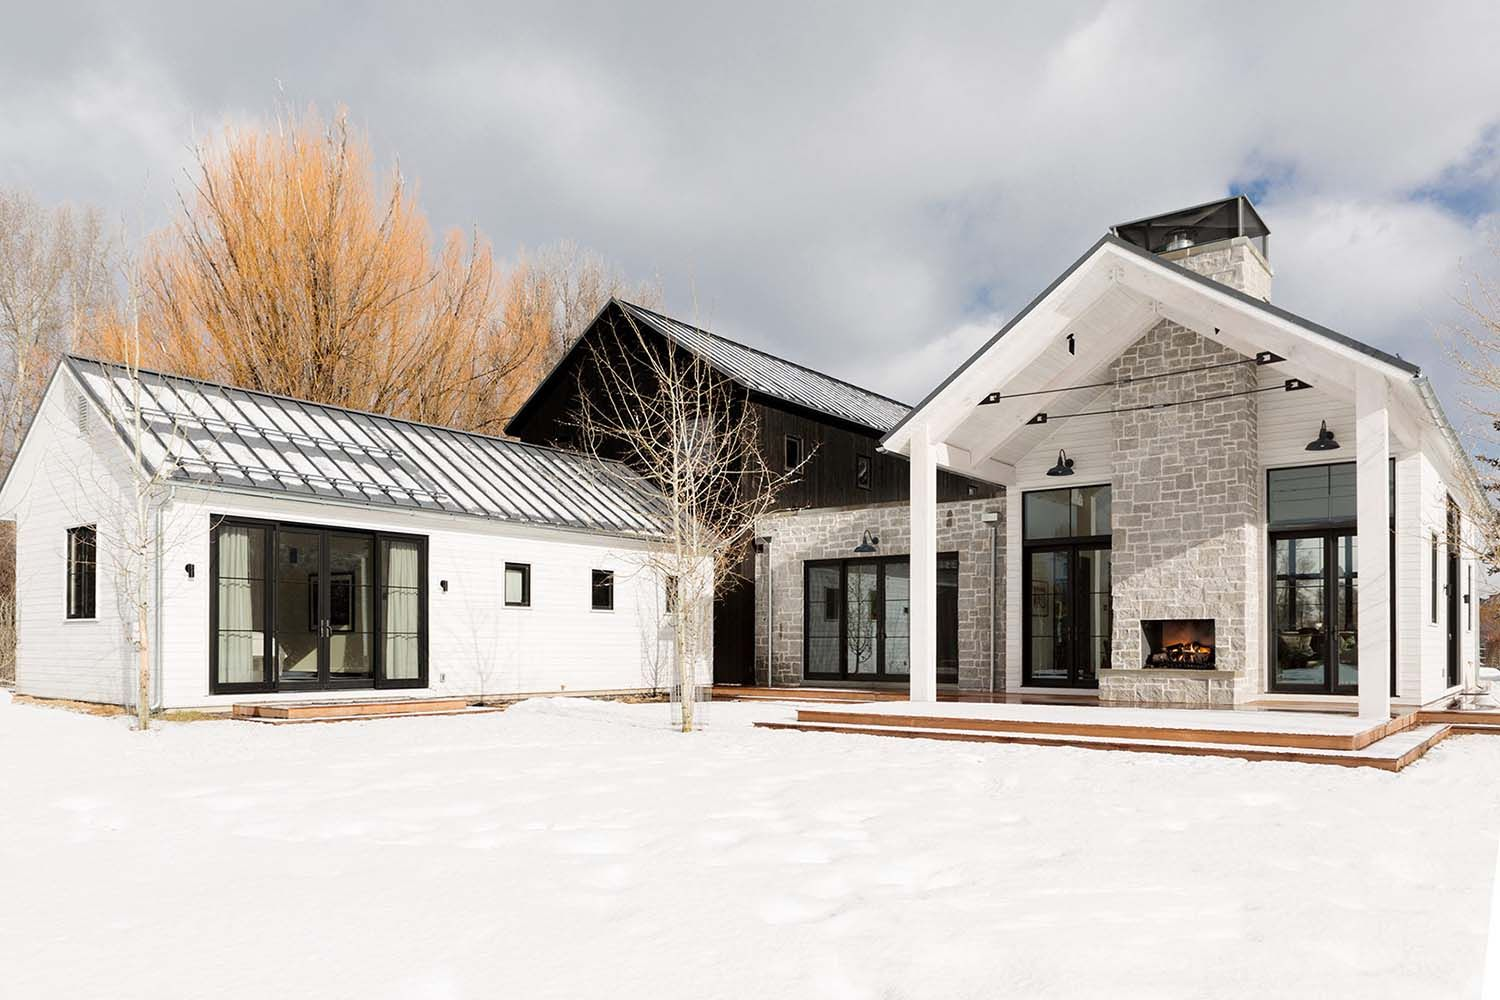 Modern farmhouse inspired home with dramatic views of theGrand Tetons